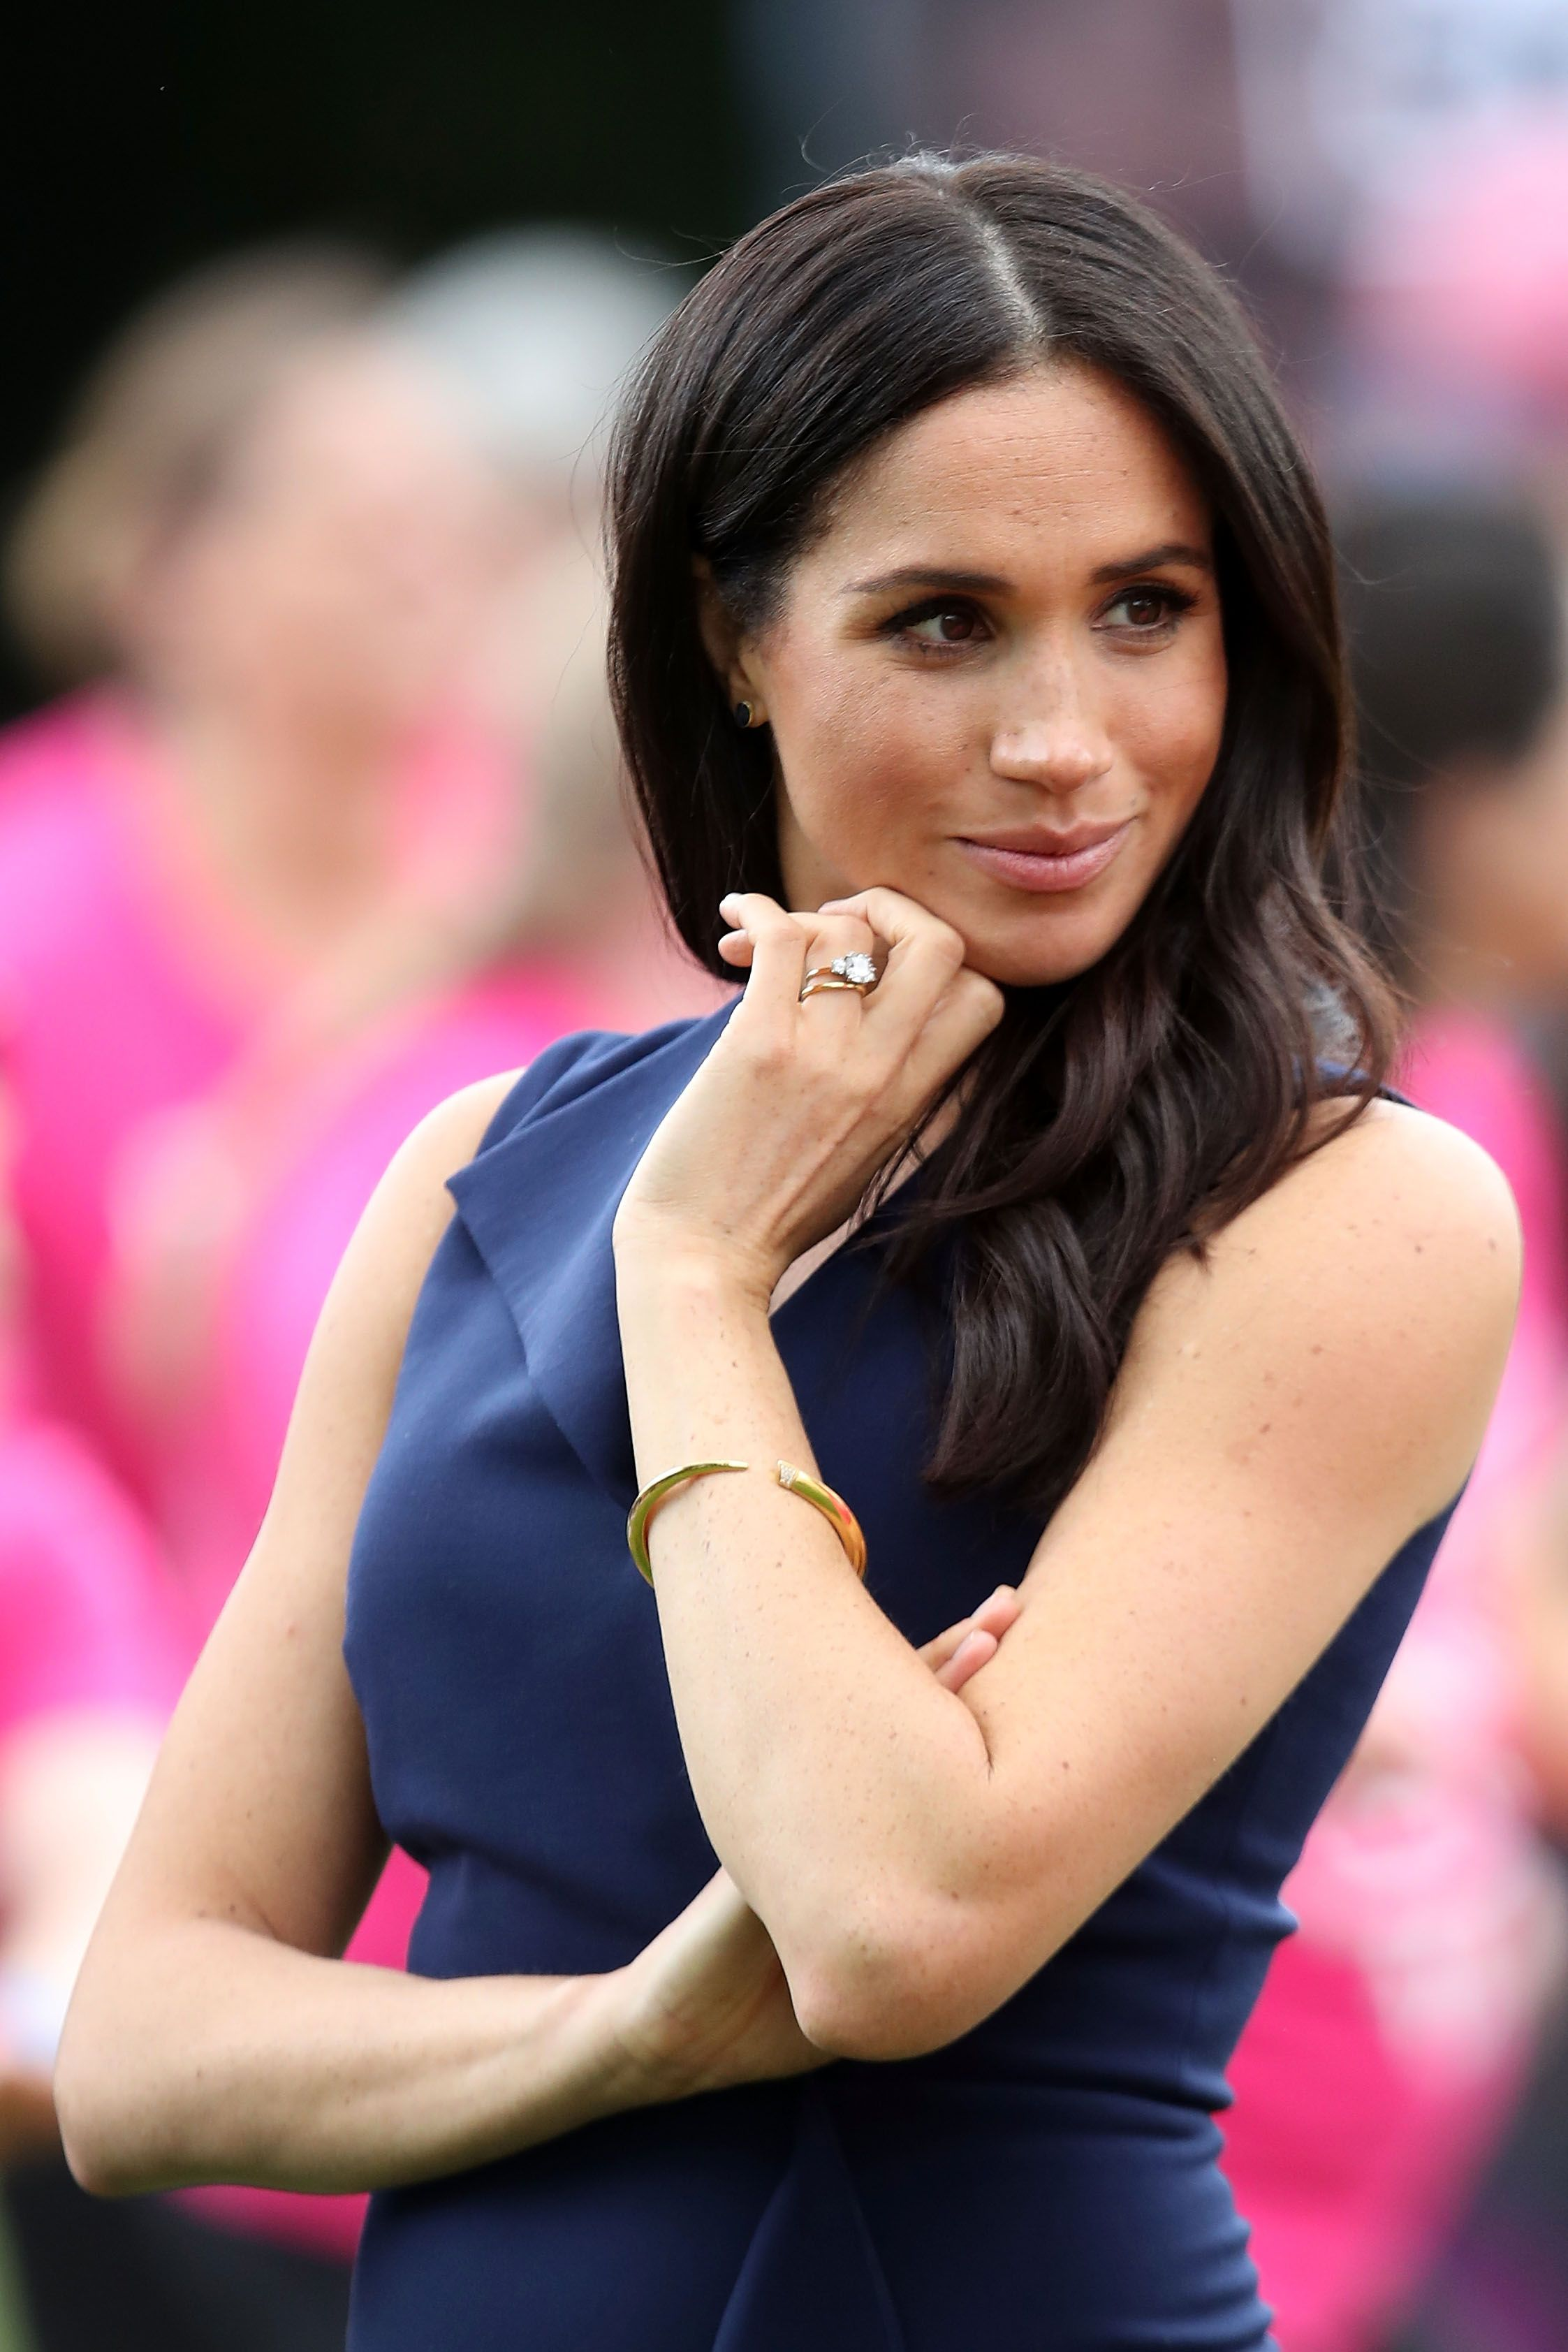 Meghan Markle Gets Personal in Letter Urging Congress to Pass Paid Leave for All Plan